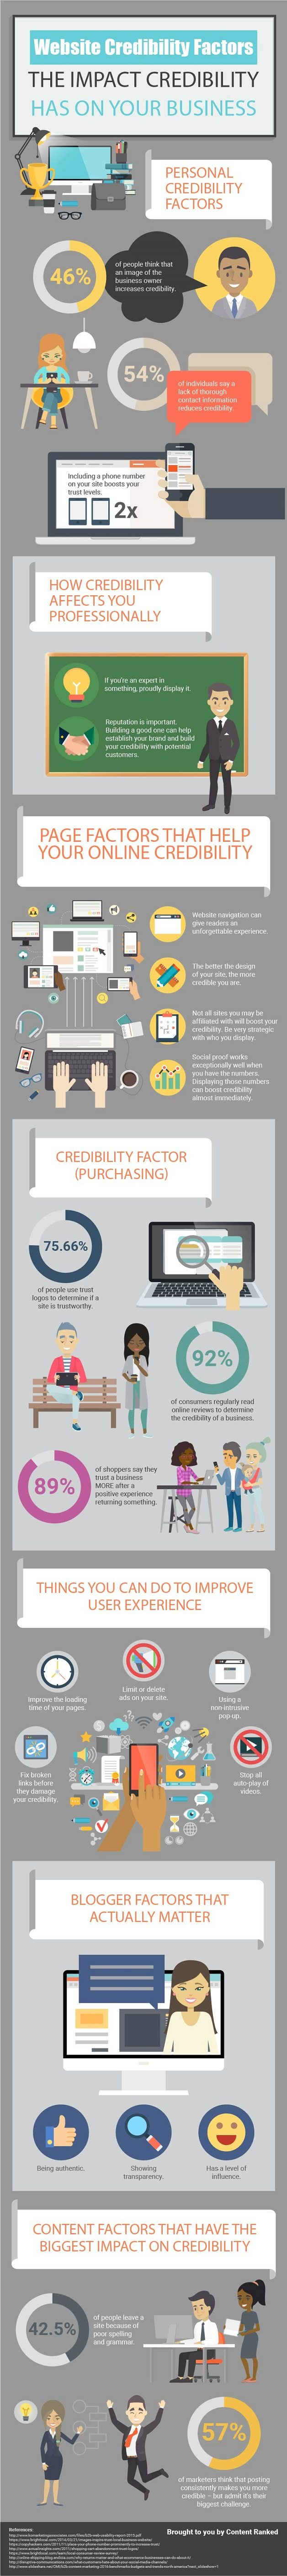 Top tips for how to improve your business website credibility